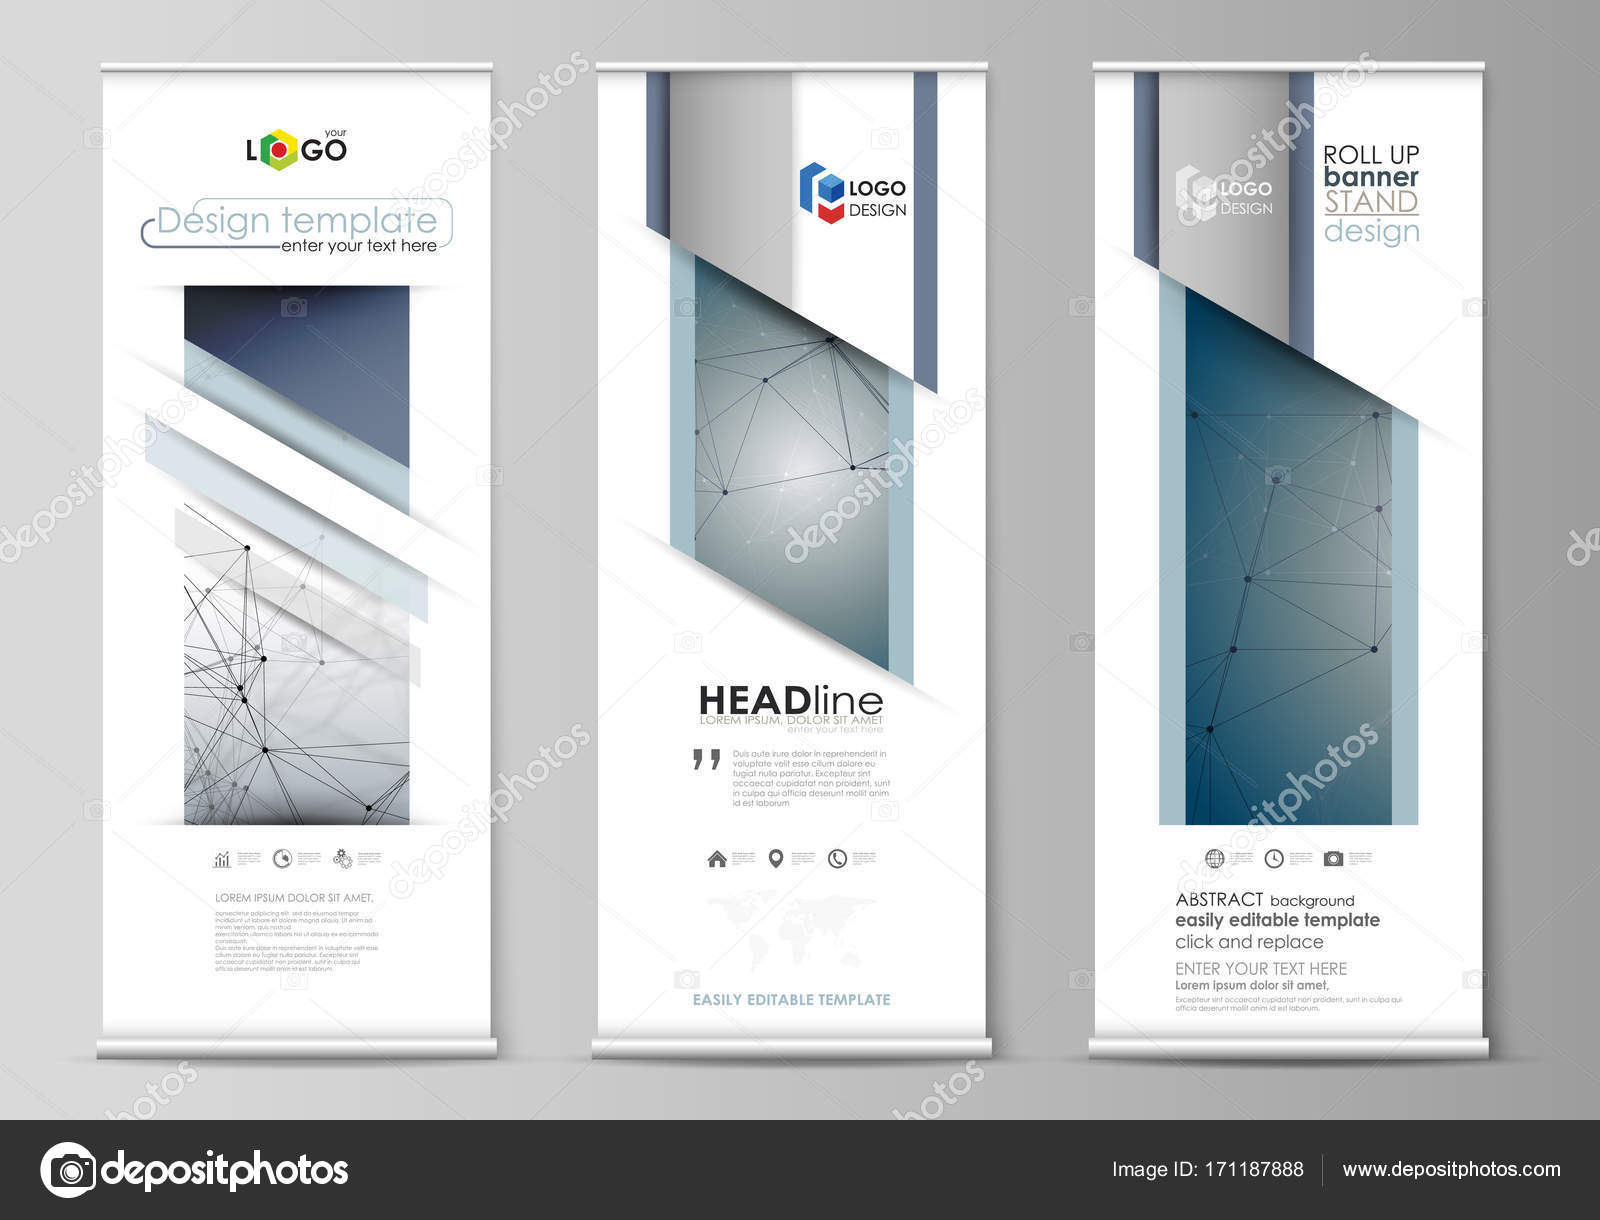 roll up banner stands abstract geometric design business concept